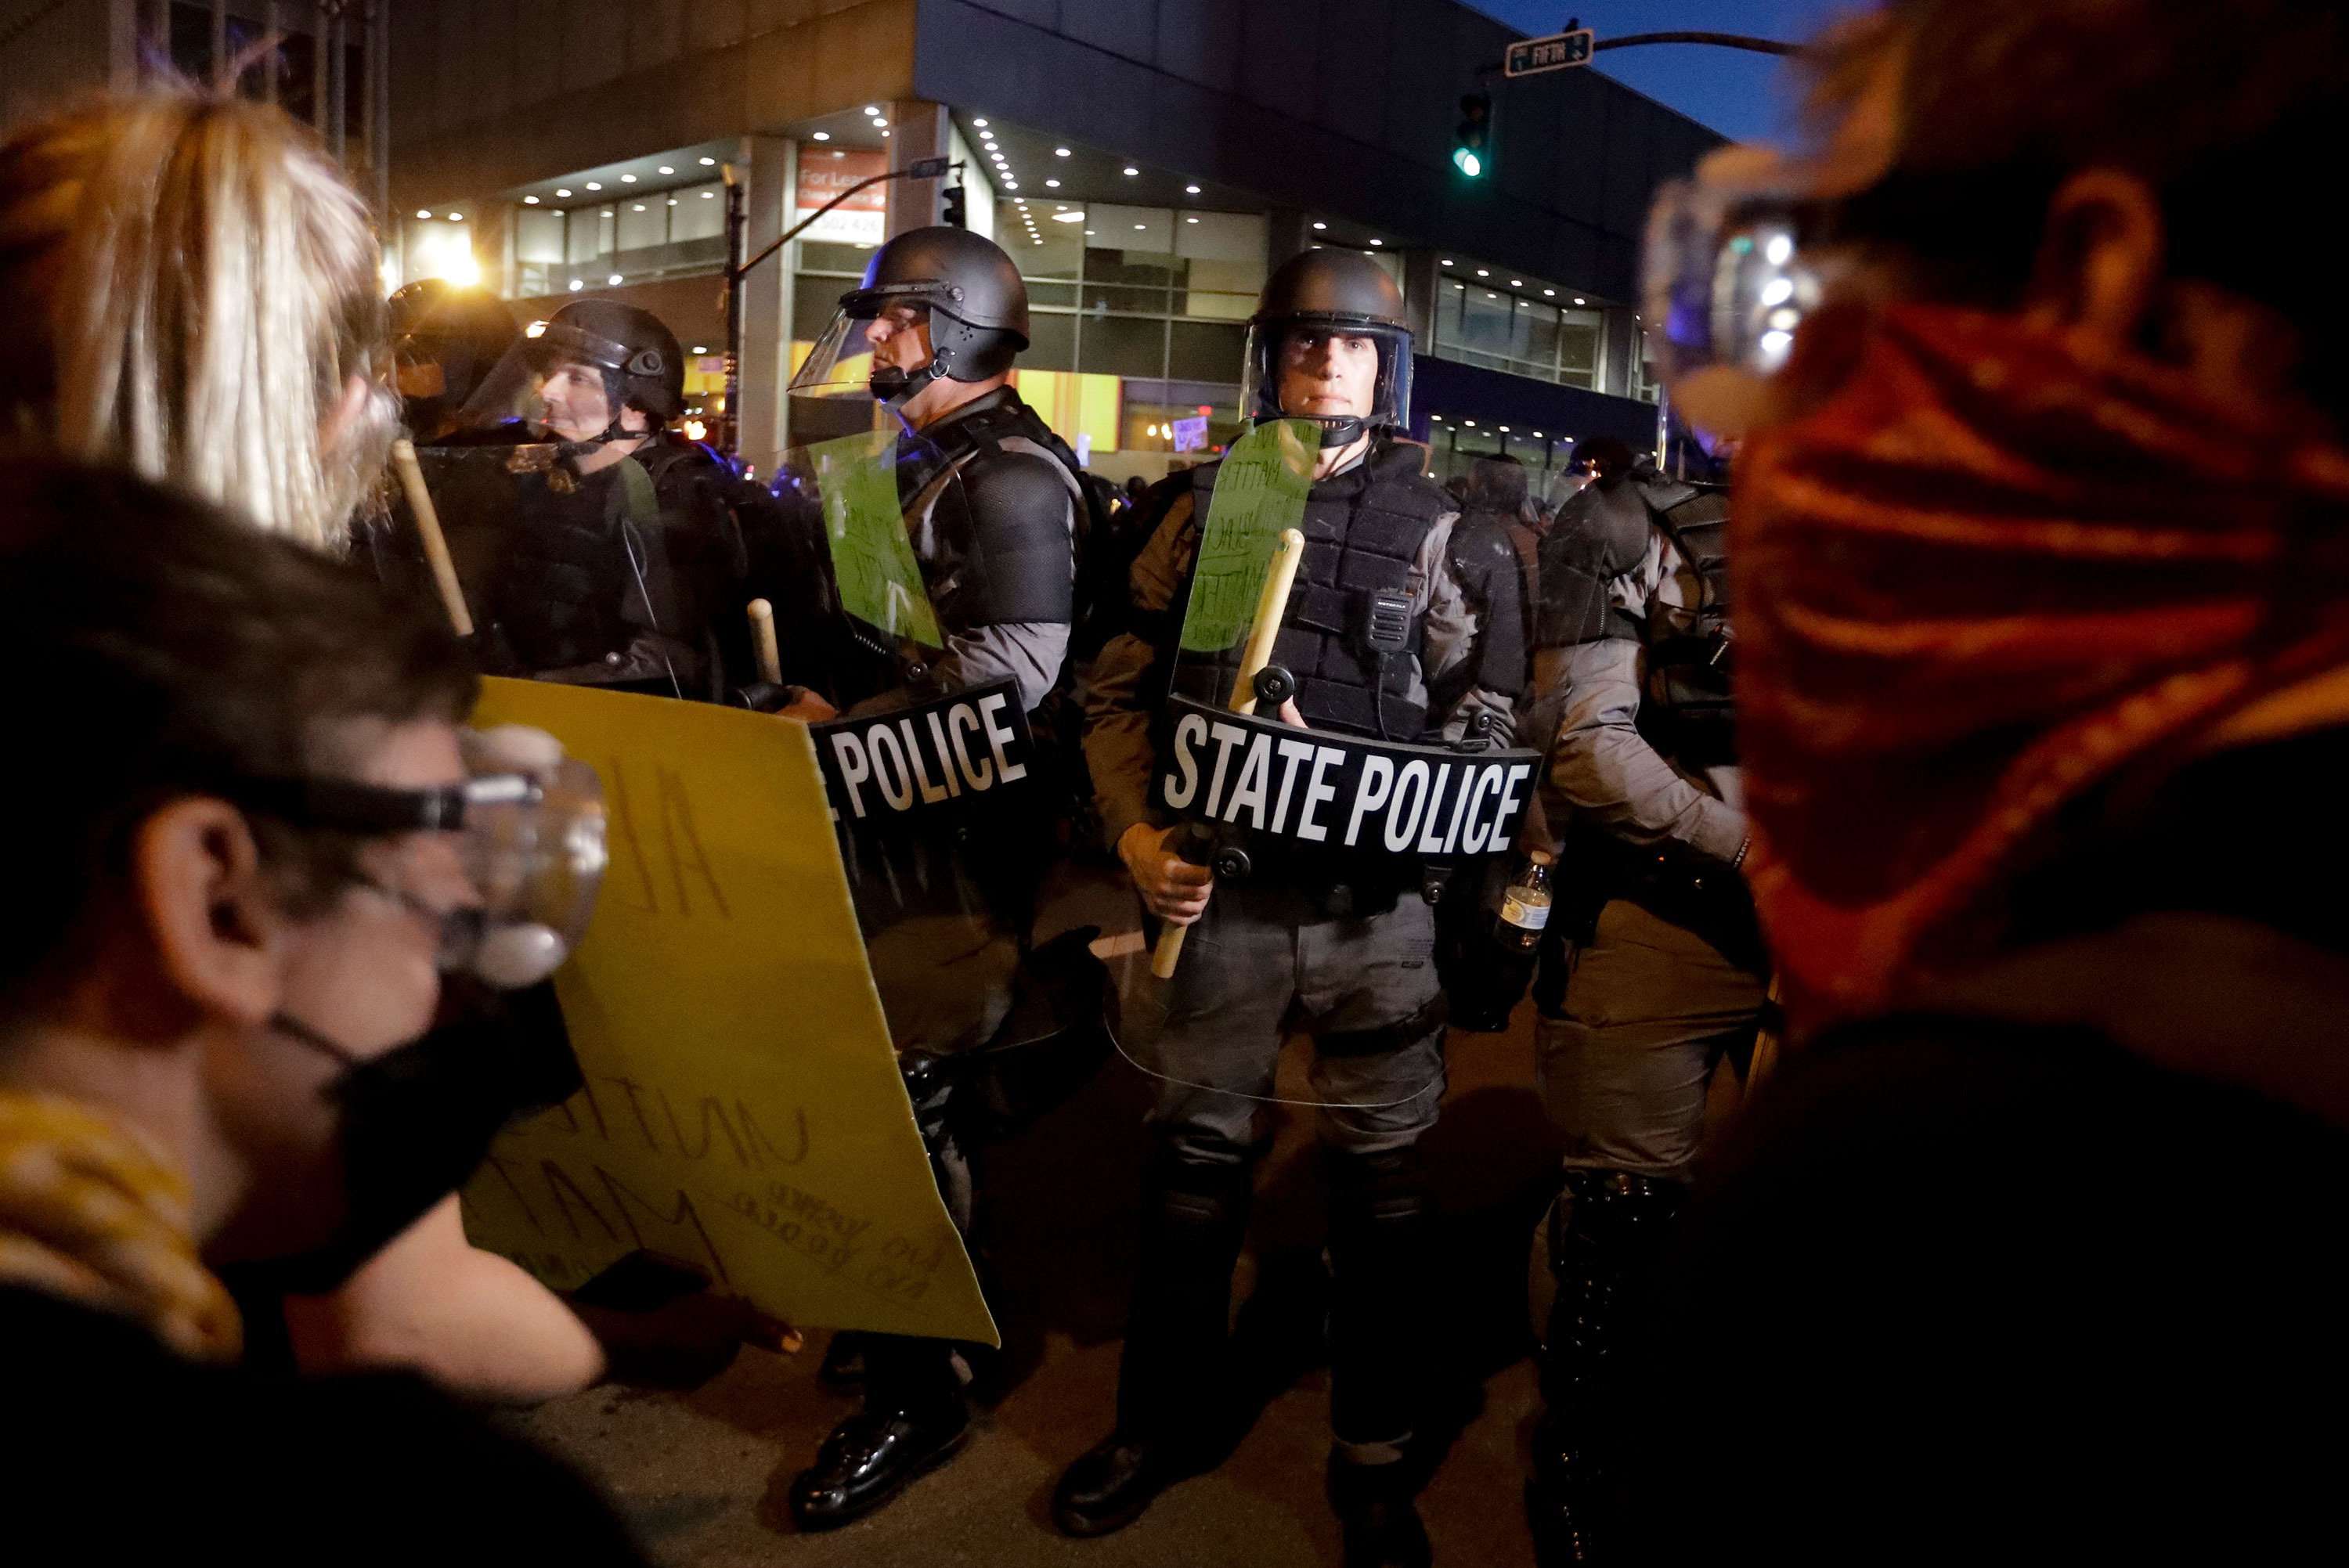 Protesters stand in front of Kentucky State Police officers in Louisville, Kentucky, on May 29.